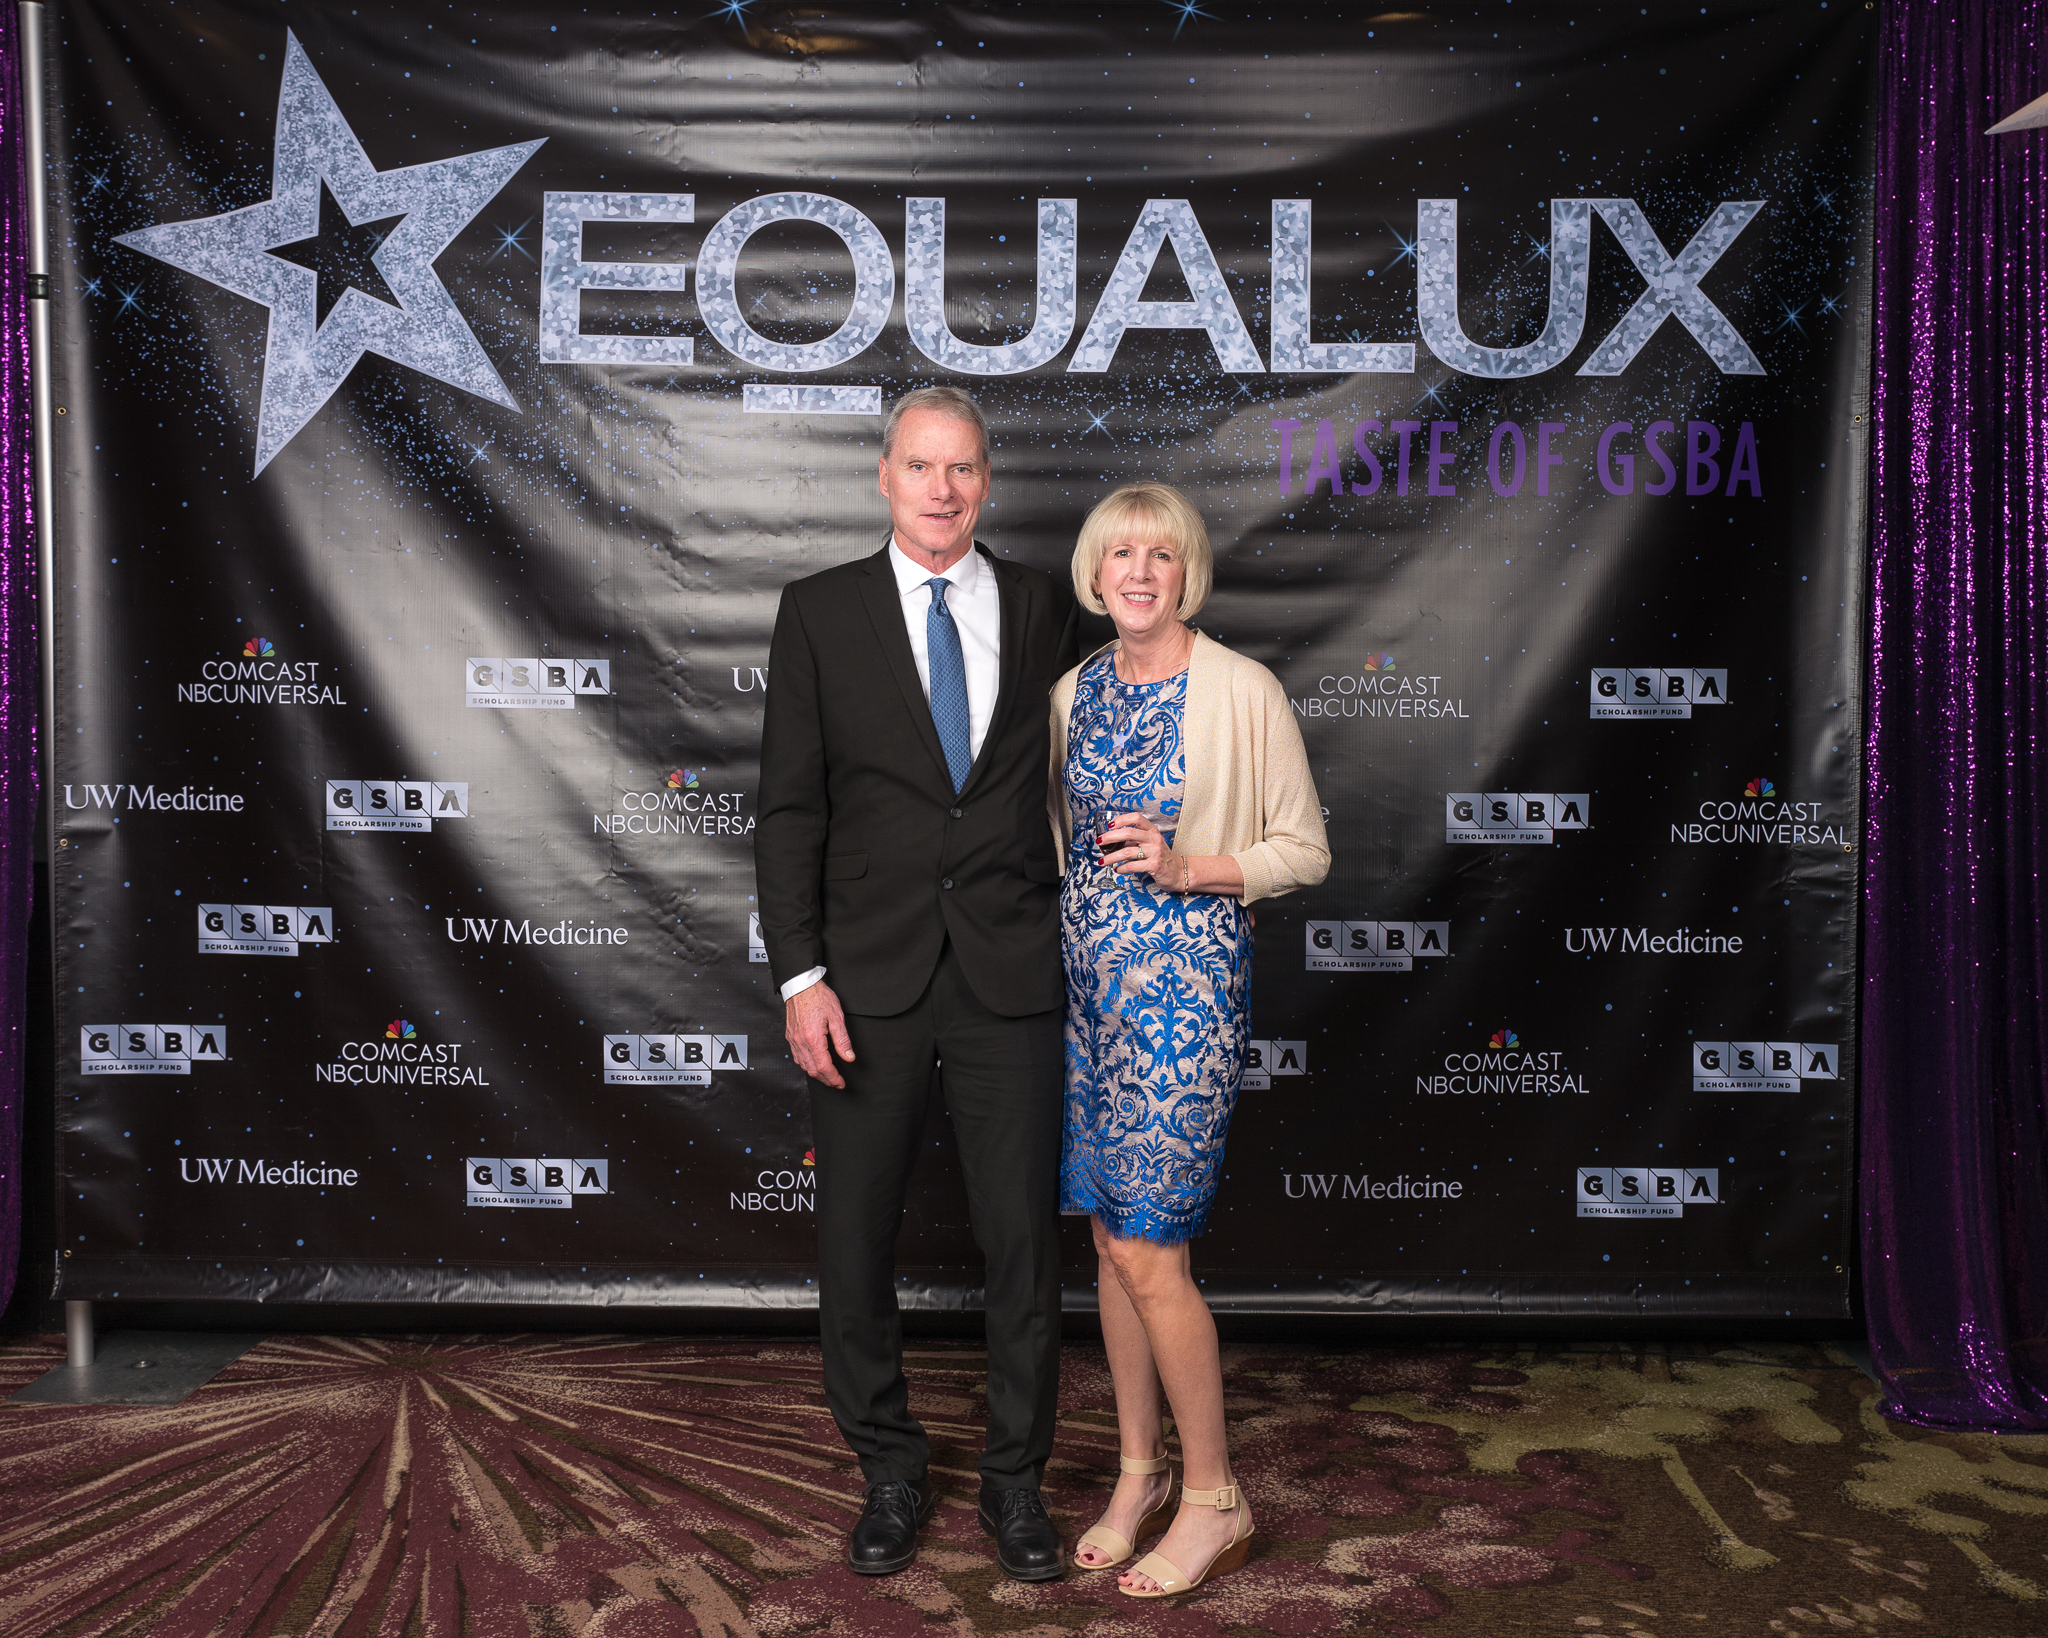 111718_GSBA EQUALUX at The Westin Seattle (Credit- Nate Gowdy)-40.jpg